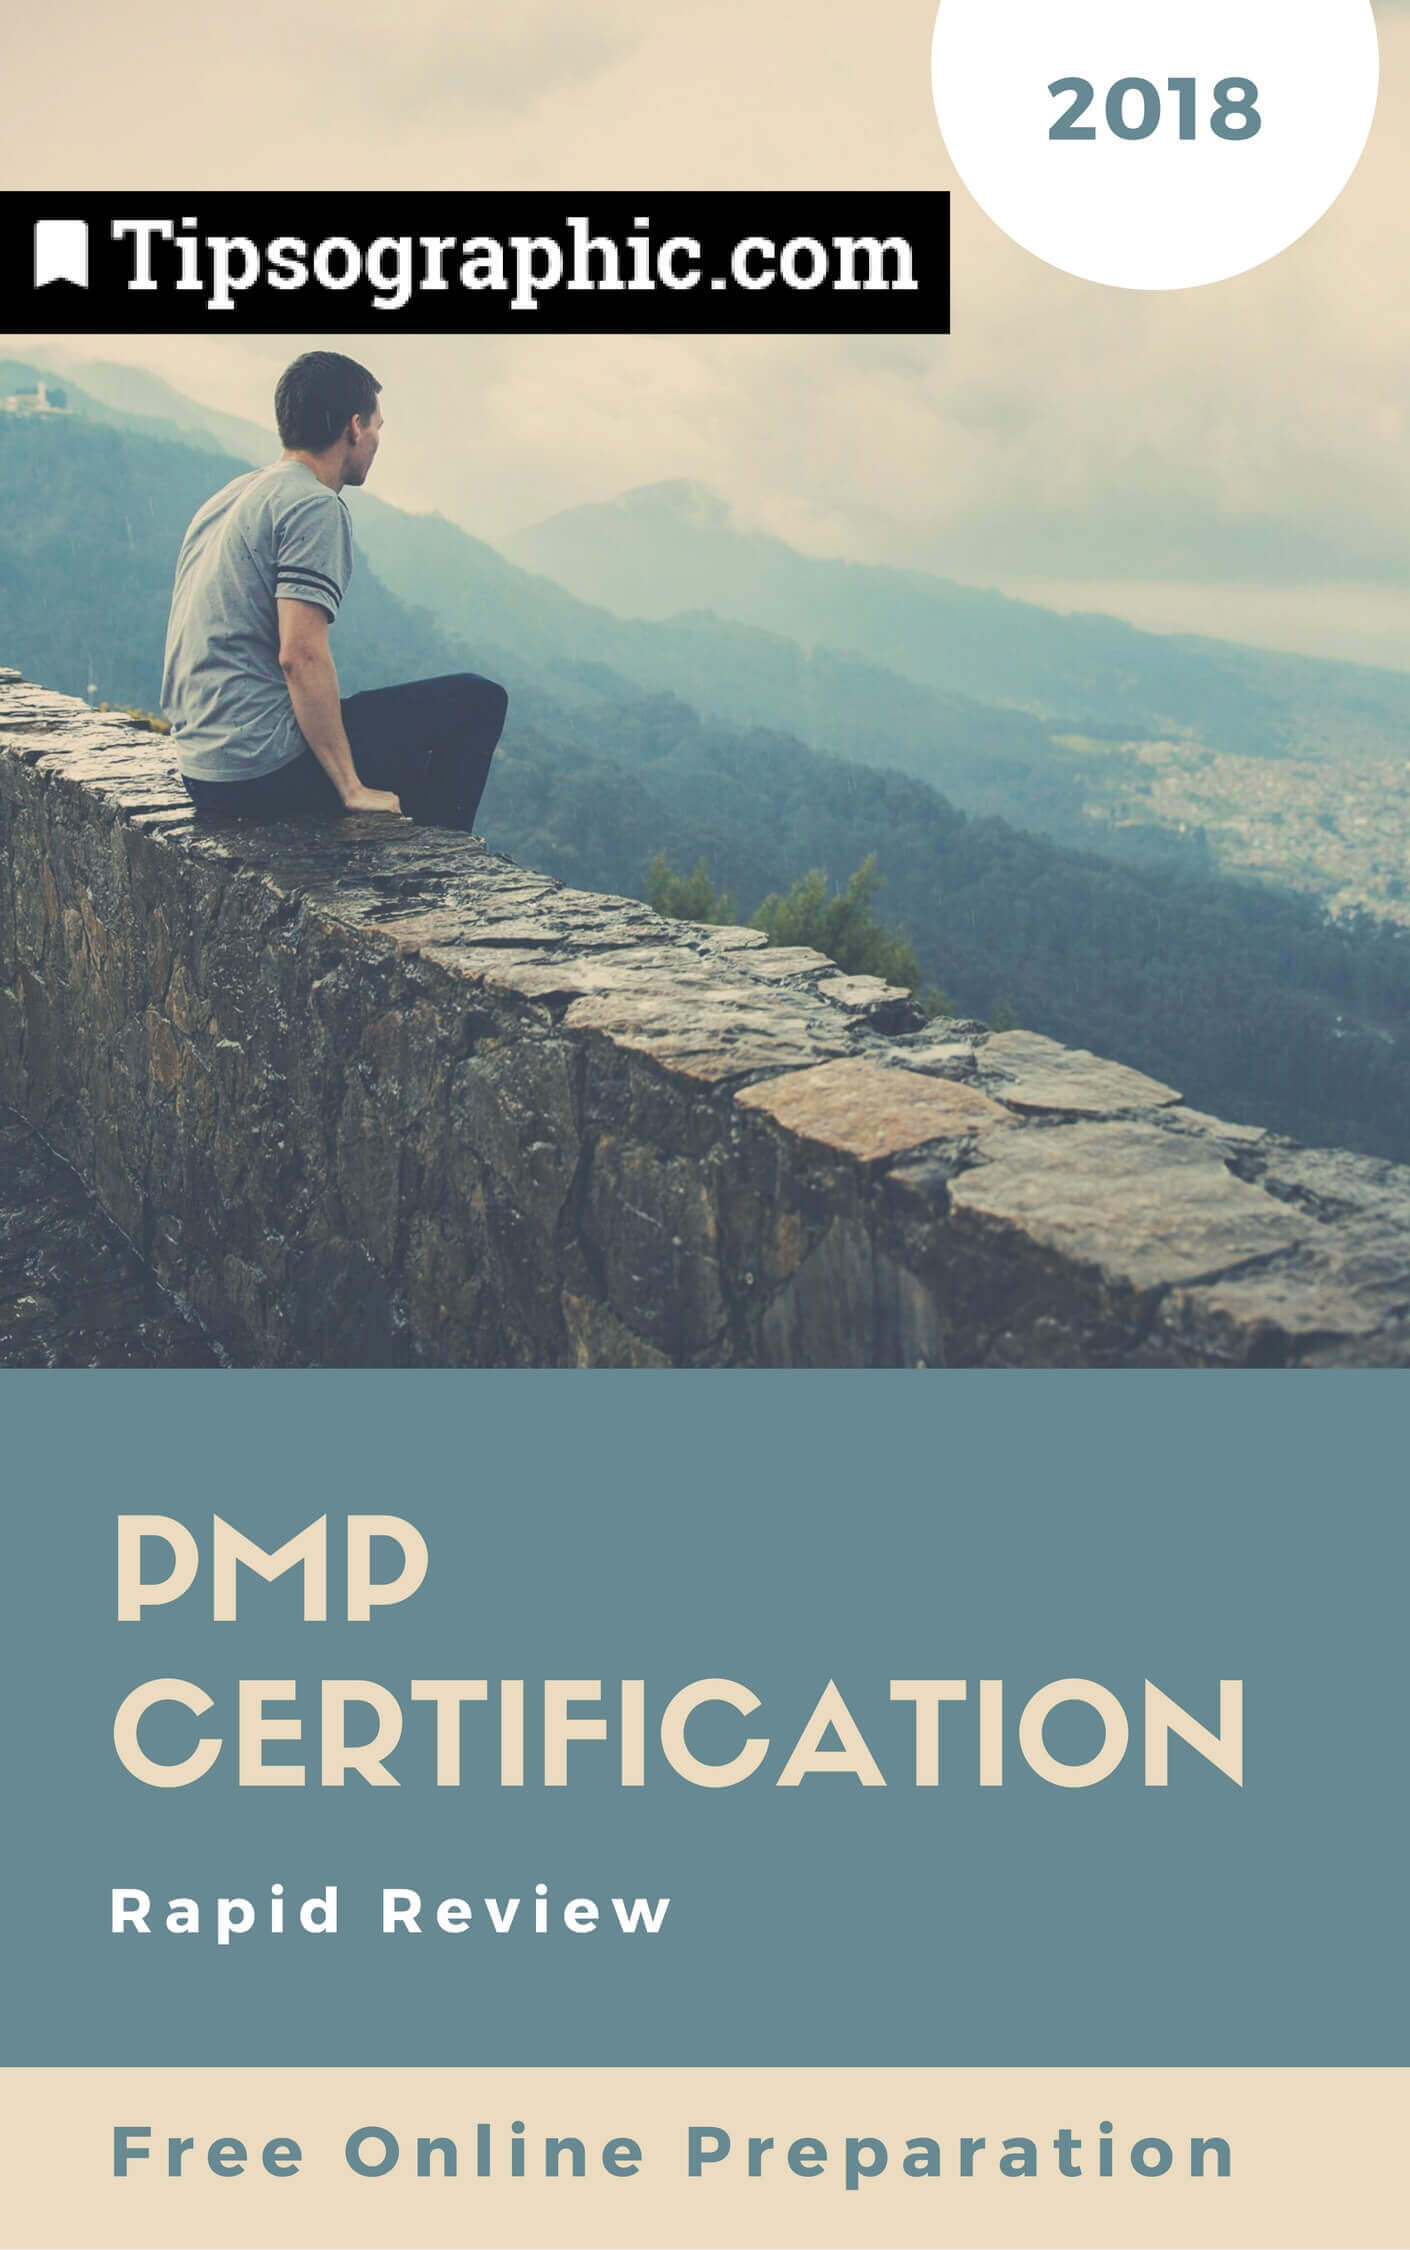 Pmp certification monitor risks based on pmbok guide 6th pmp certification 2018 rapid review free online preparation tipsographic 1betcityfo Images